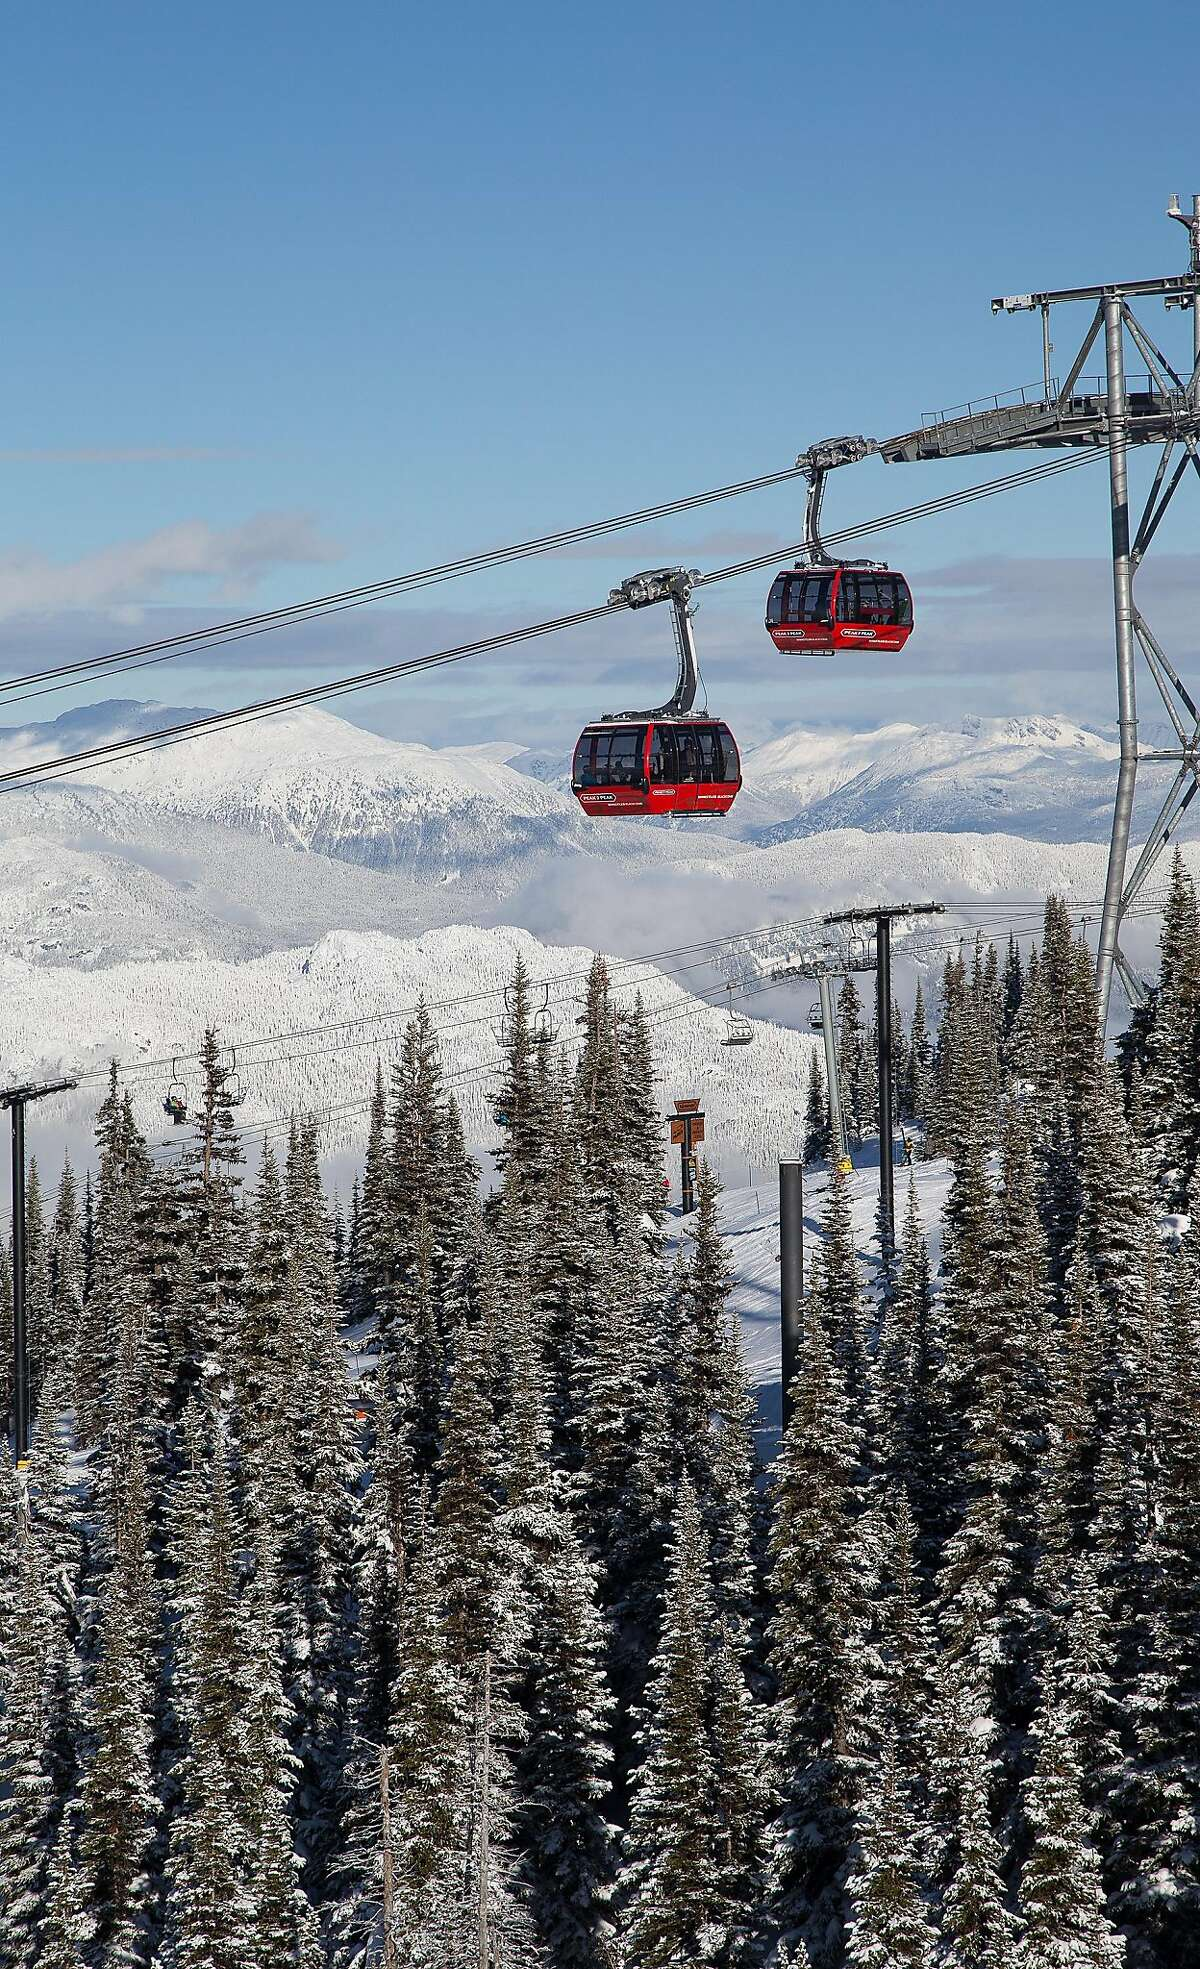 Whistler Mountain is looking to boost its year-round amenities and add new lifts. (Paul Morrison/Whistler-Blackcomb Resort)